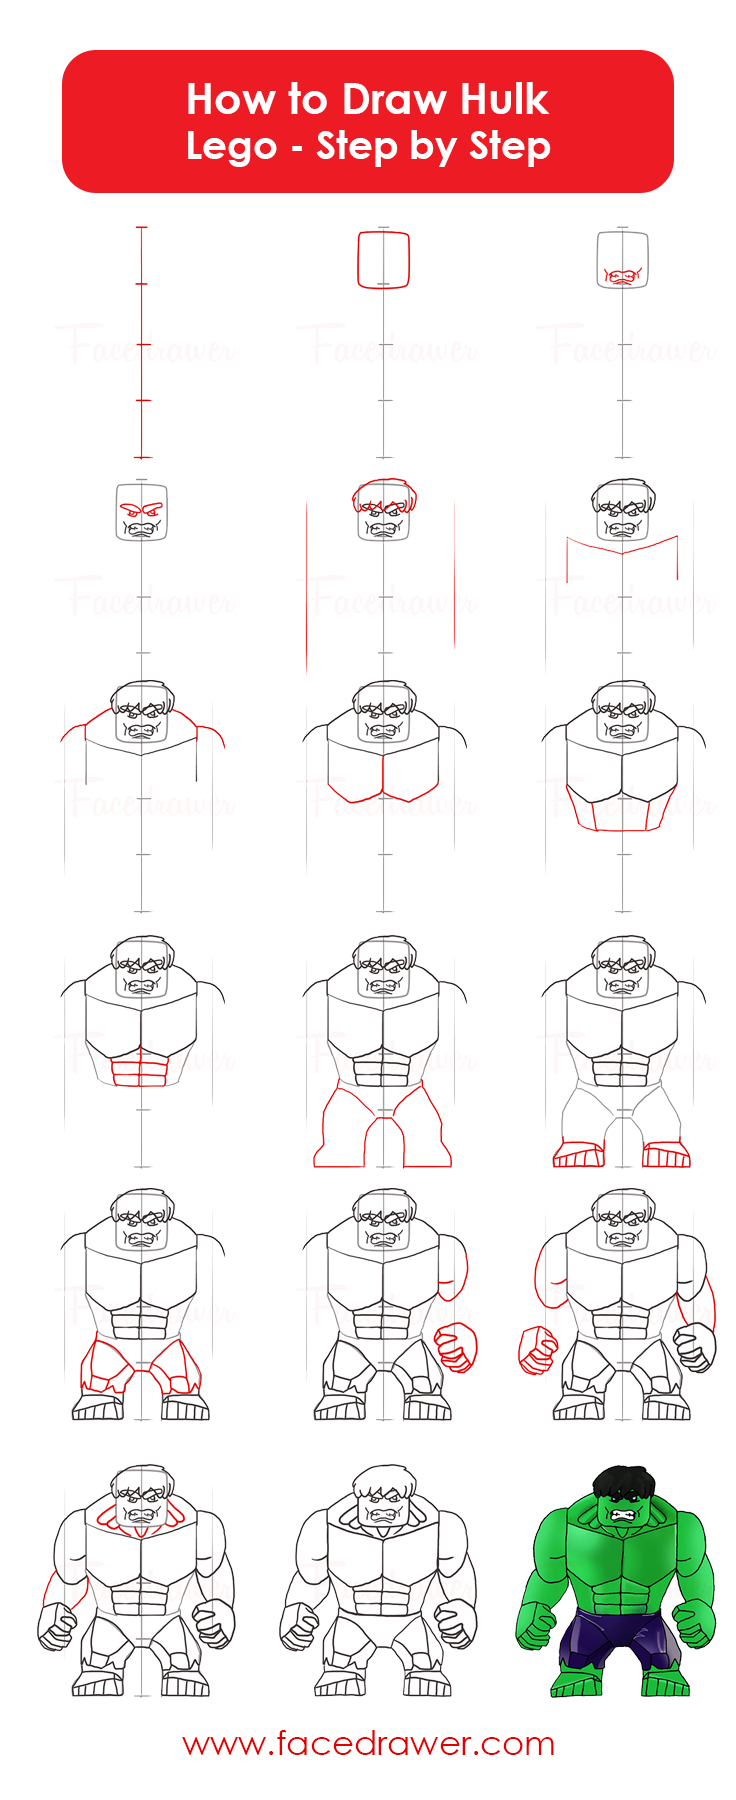 how-to-draw-lego-hulk-step-by-step